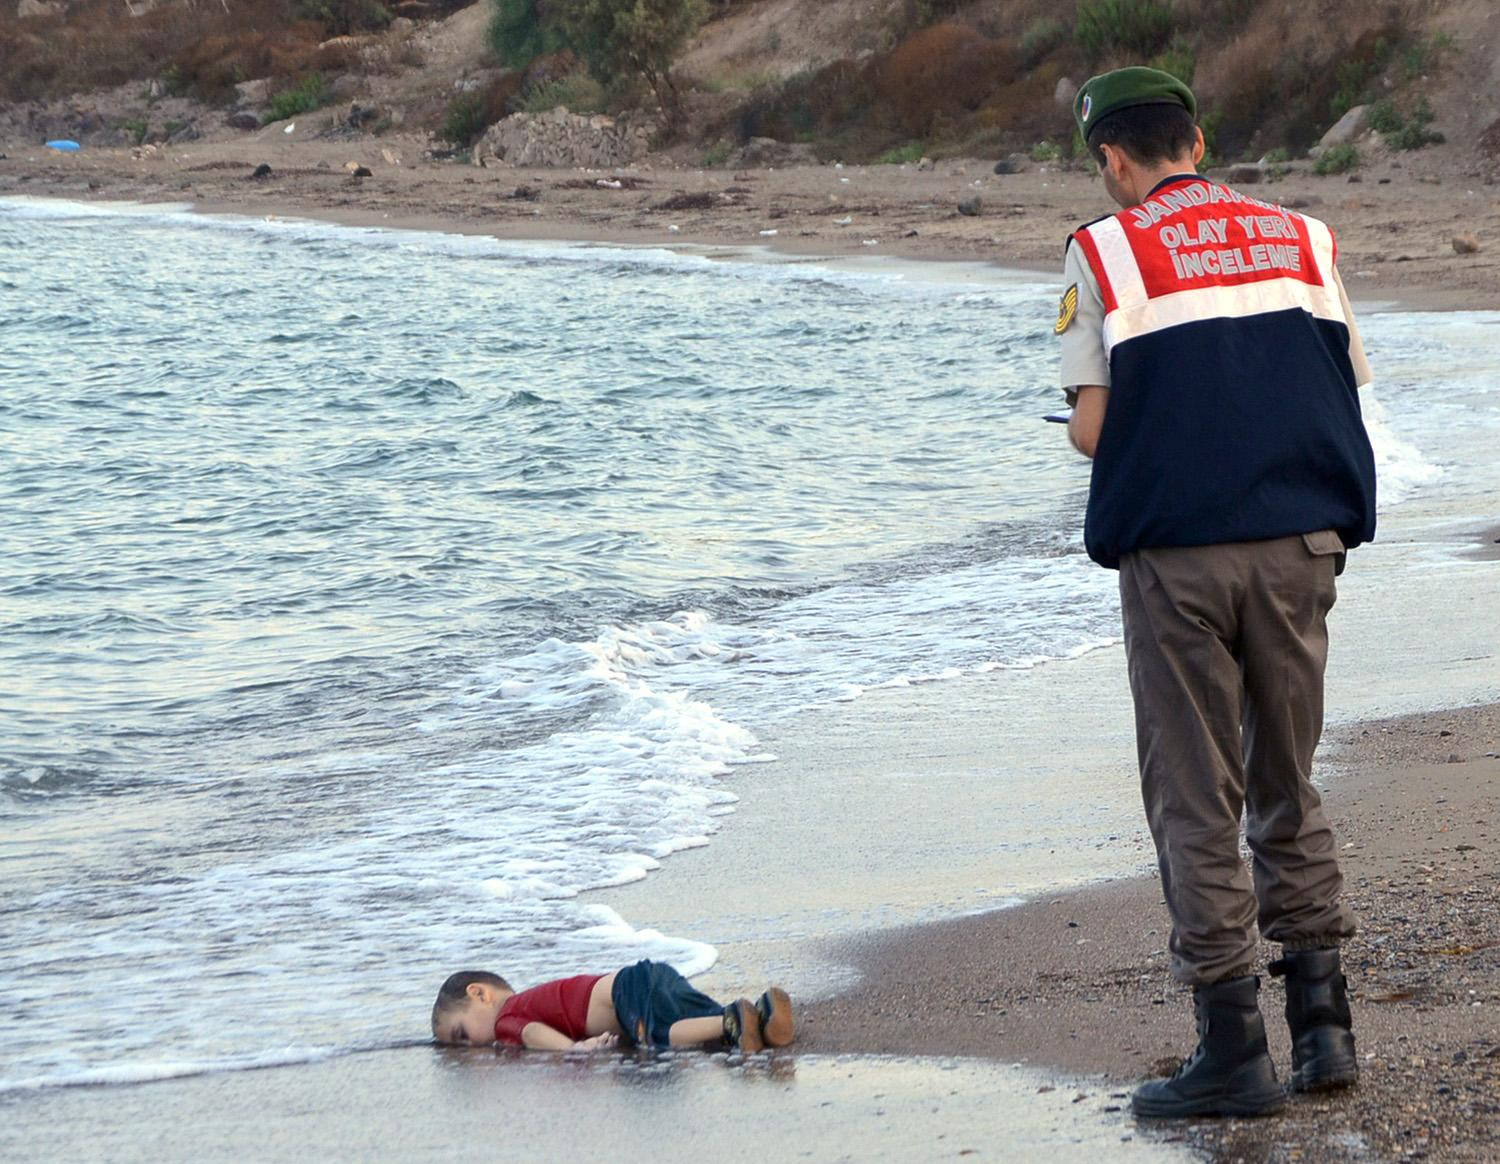 A Turkish paramilitary police officer observes the lifeless body of 3-year-old Aylan Kurdi on a Turkish beach